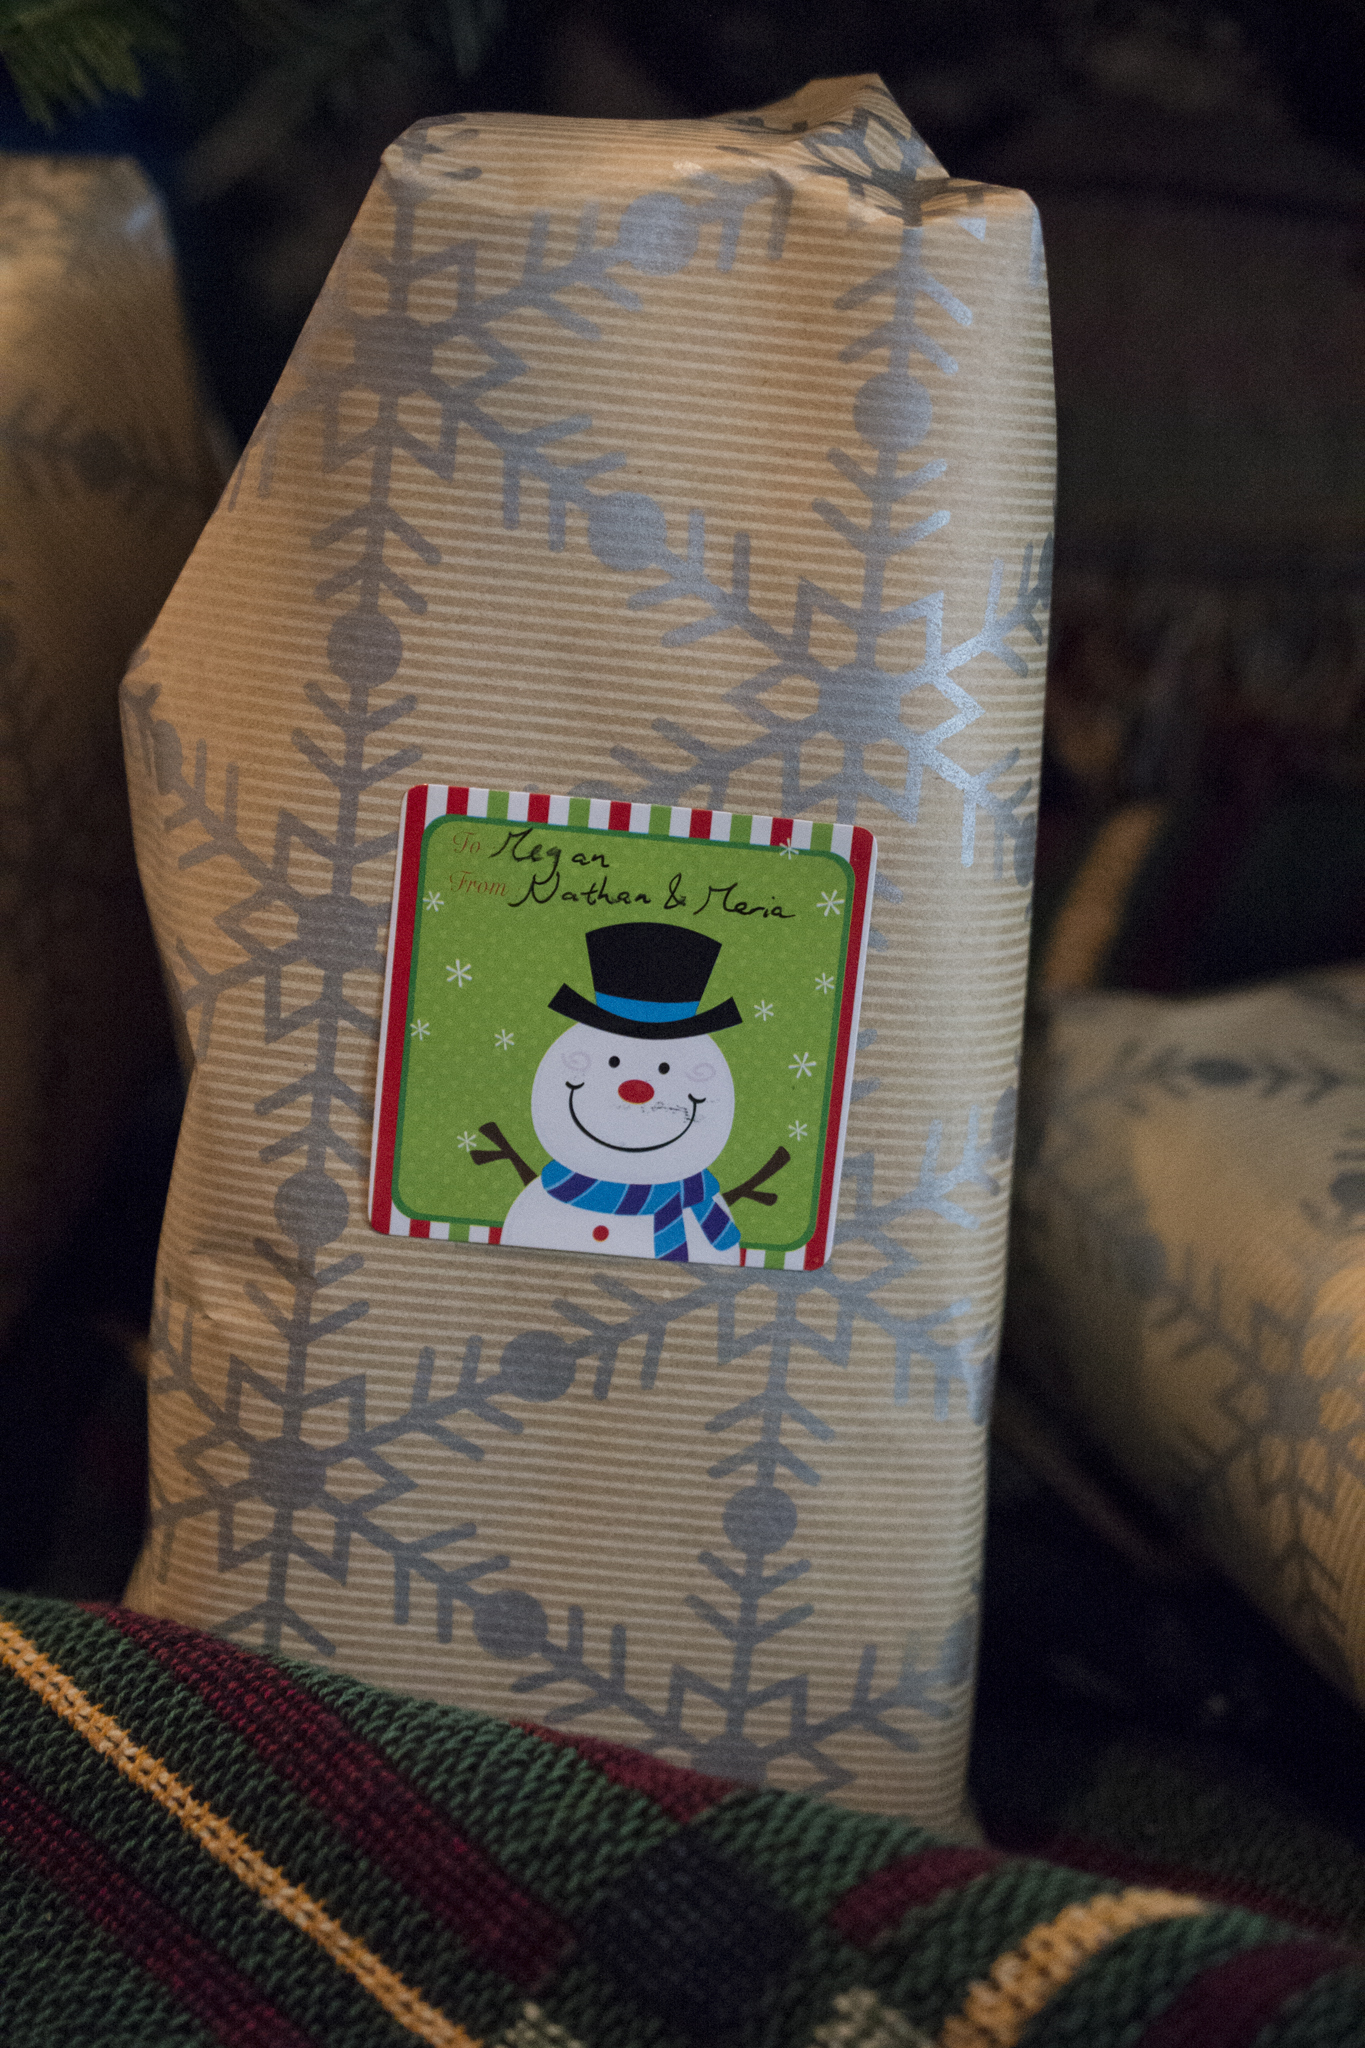 Christmas gifts in snowflake wrapping paper